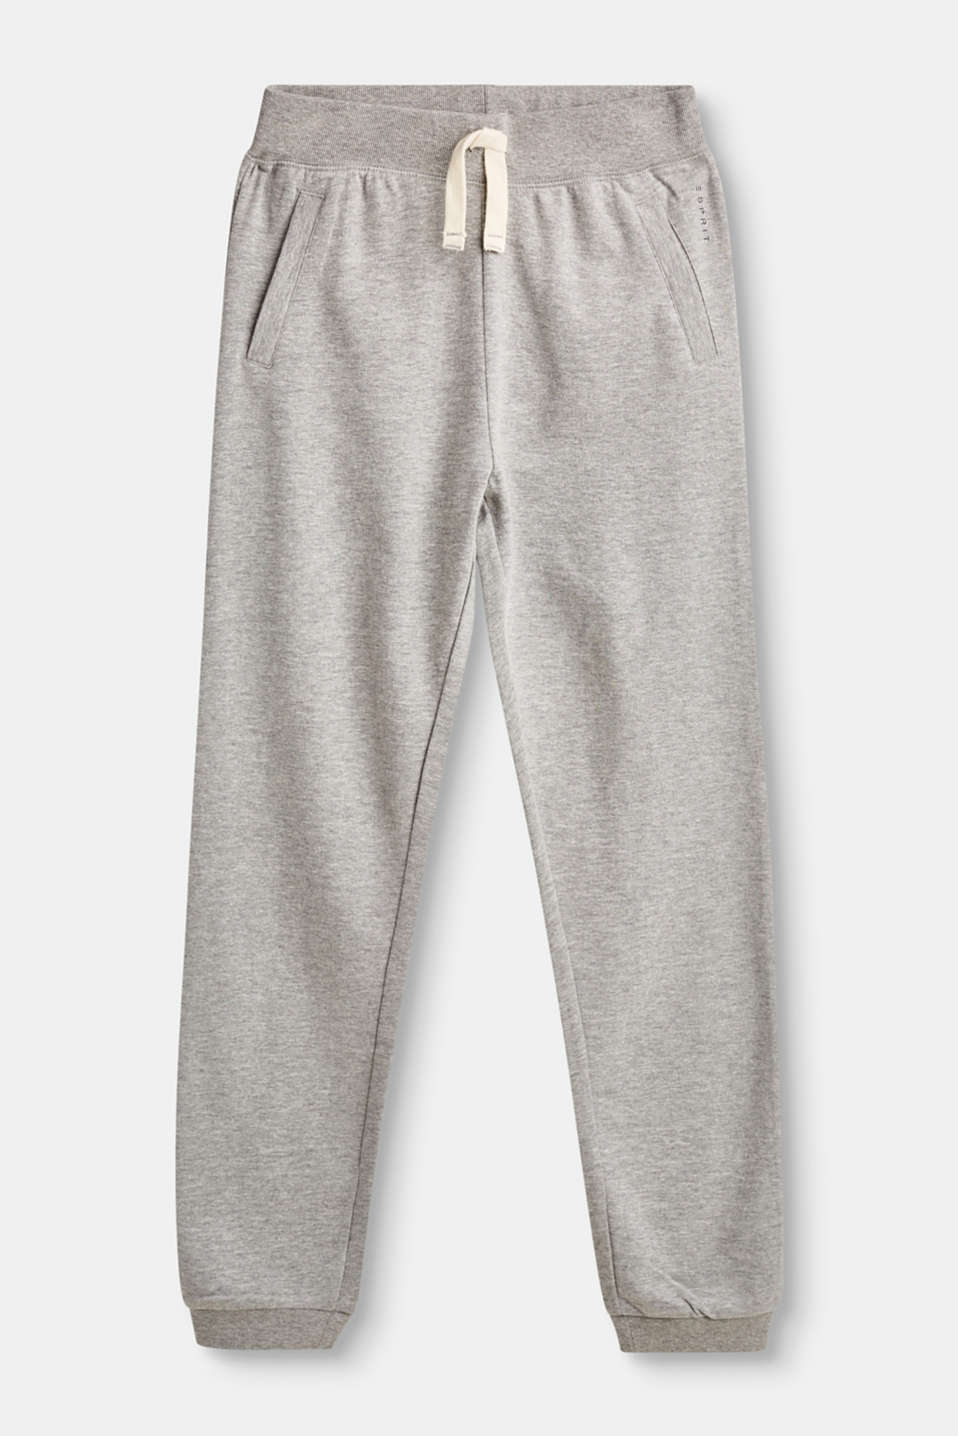 Esprit - Cotton trousers with ribbed cuffs